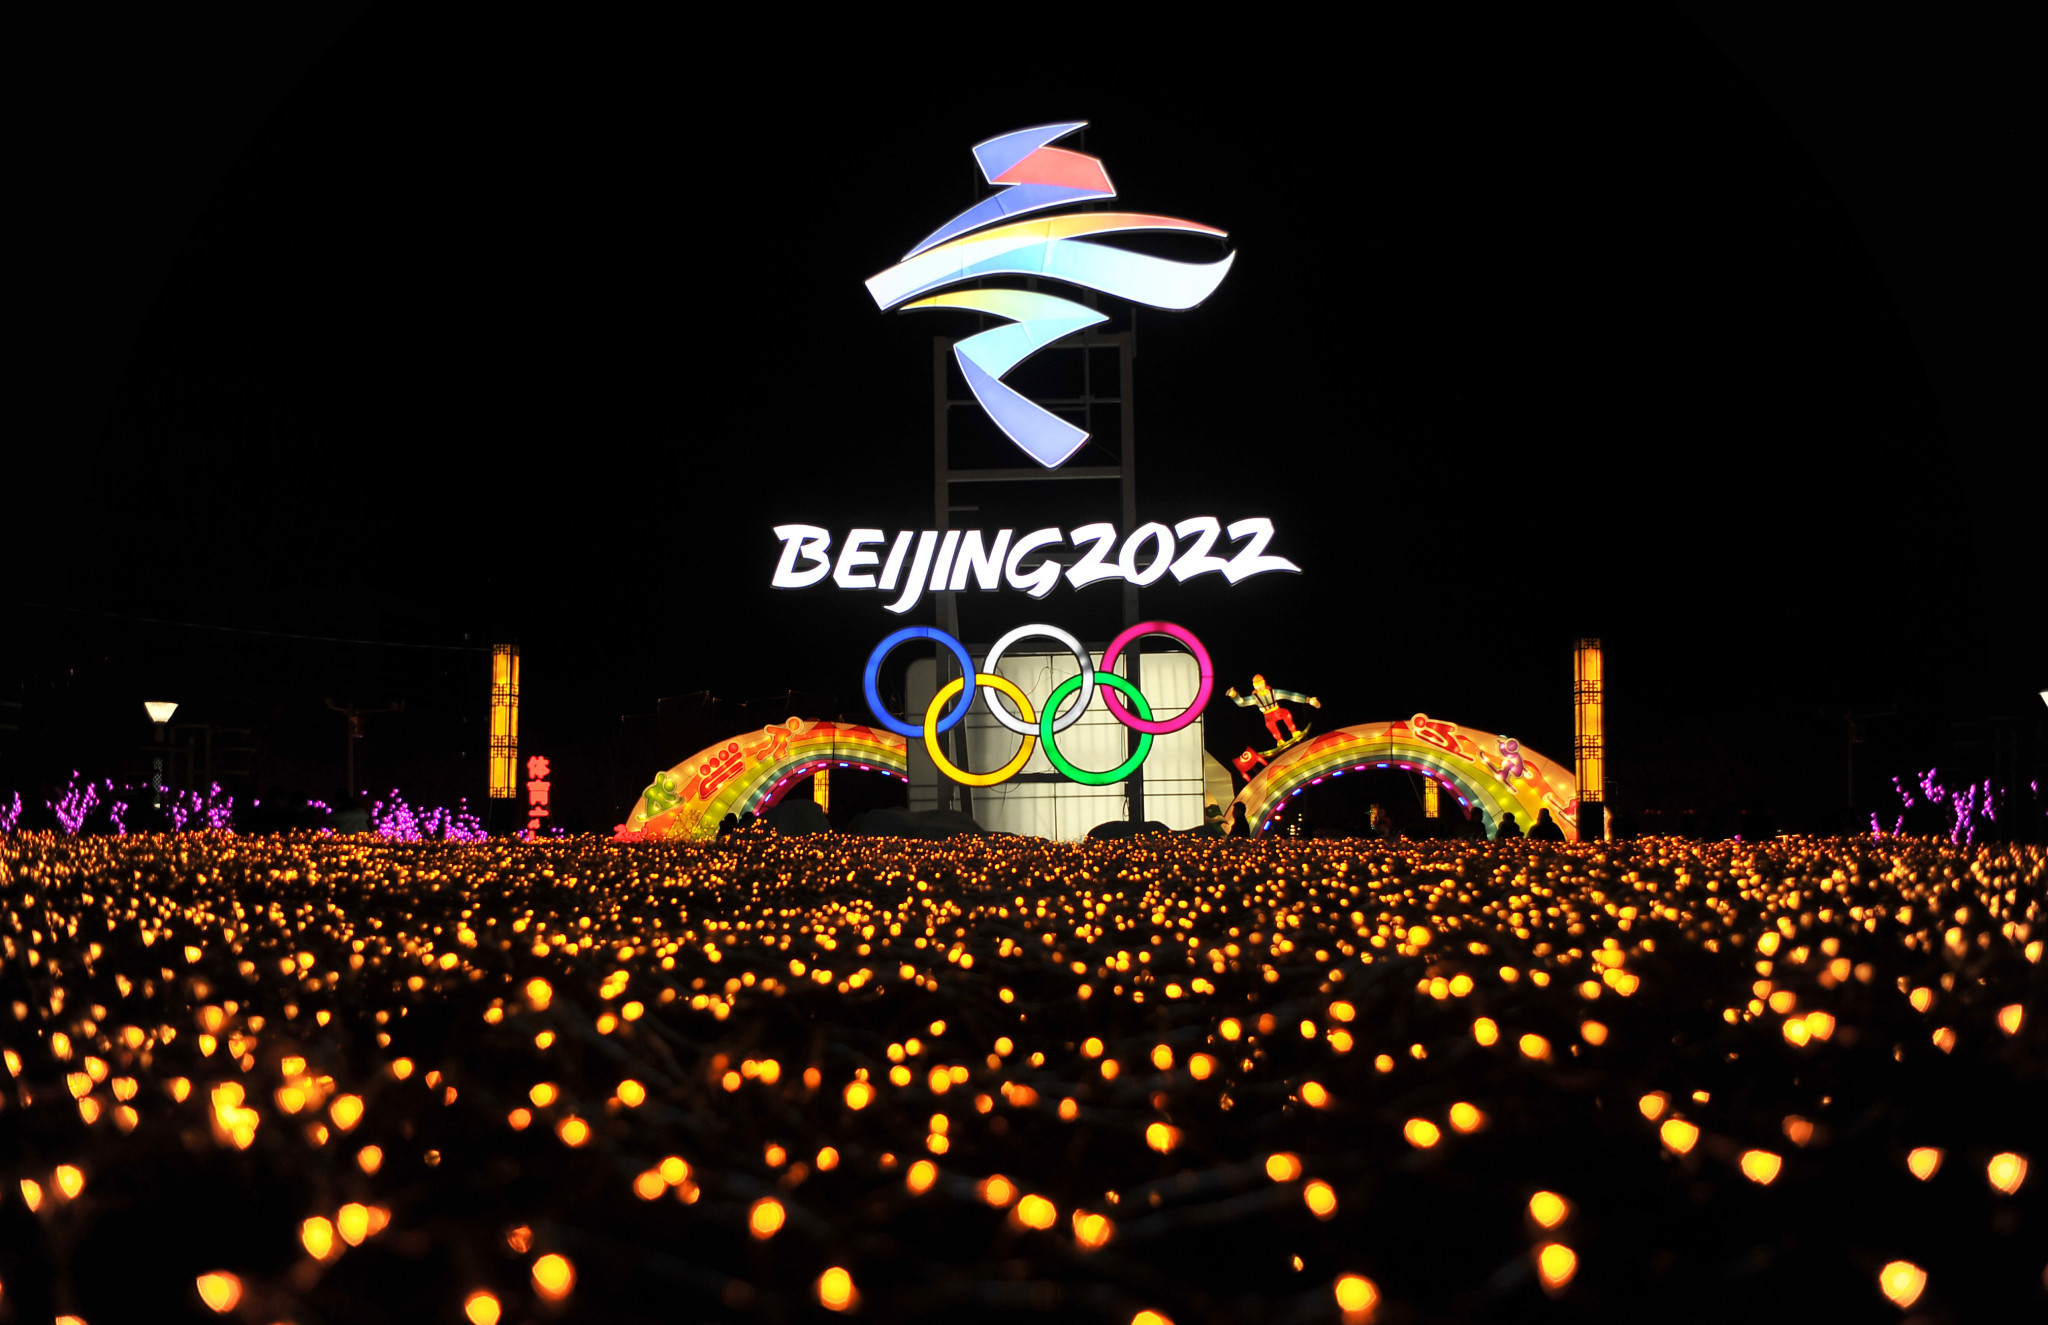 Beijing will host the SportAccord as the countdown continues to the 2022 Winter Olympics in China's capital city ©Getty Images